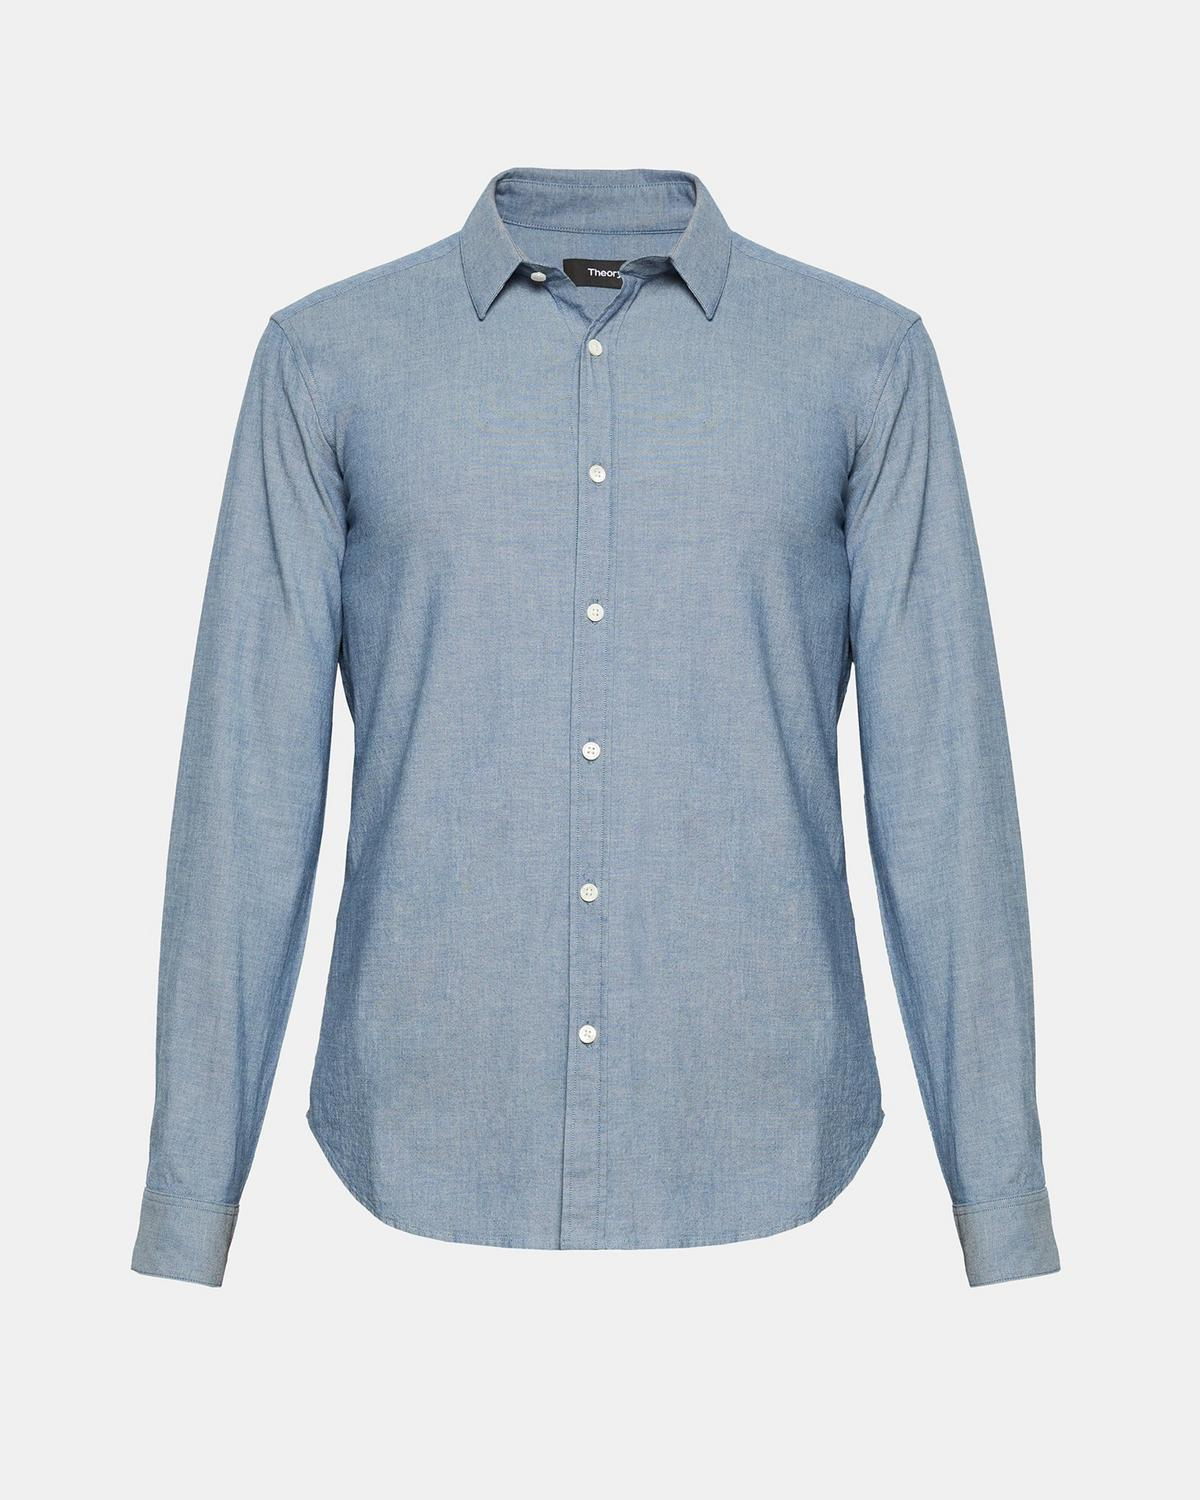 b39f8a583168 Chambray Shirt 1 - click to view larger image ...